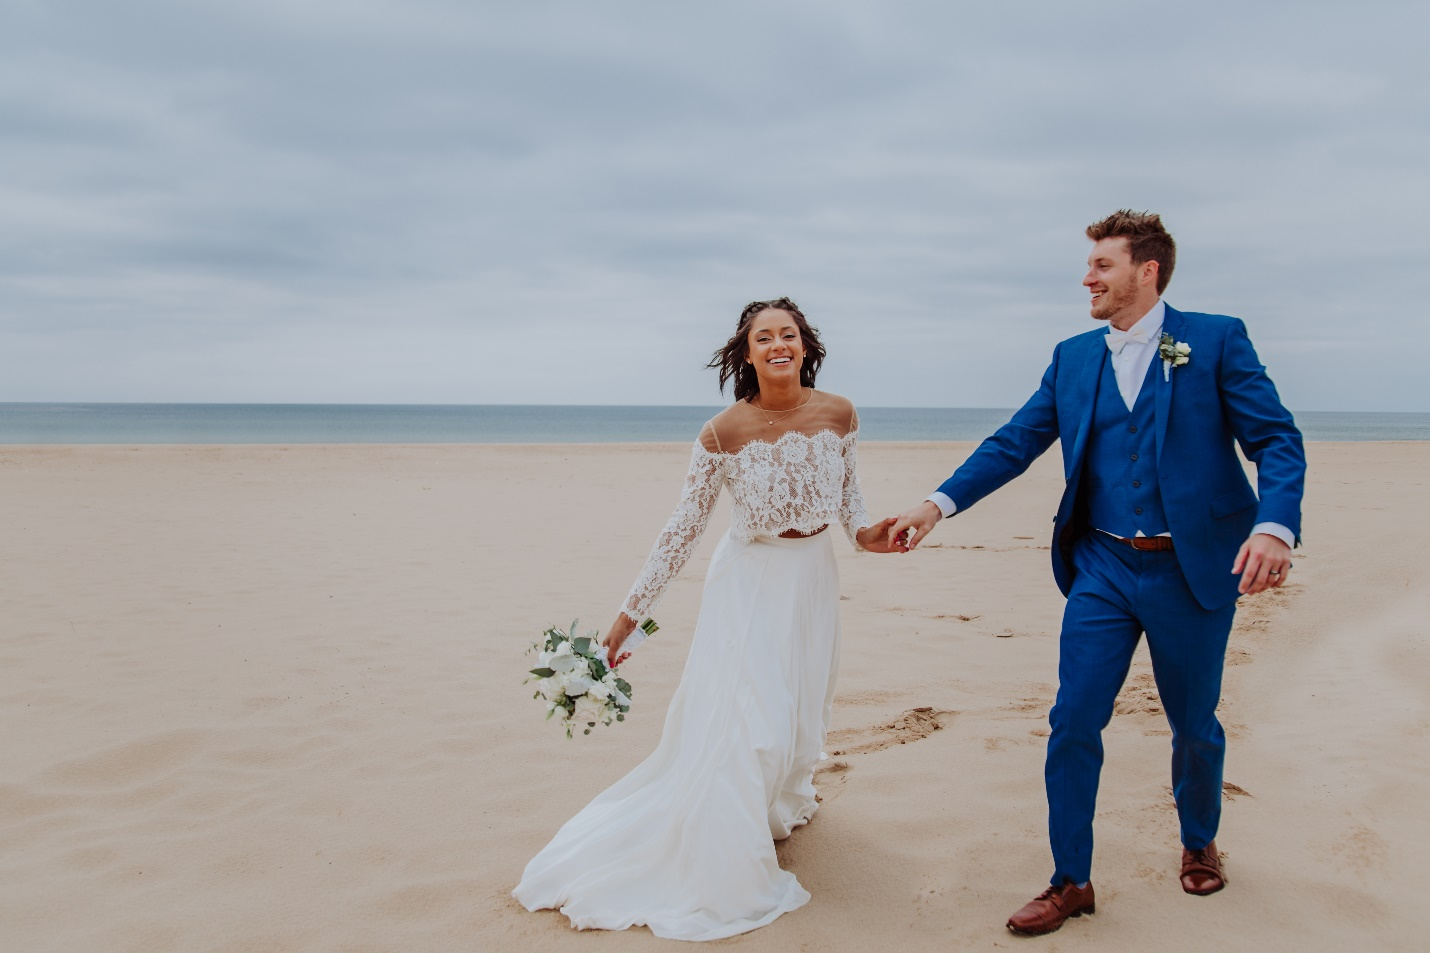 Kevin & Hannah Slagh - May 12, 2018